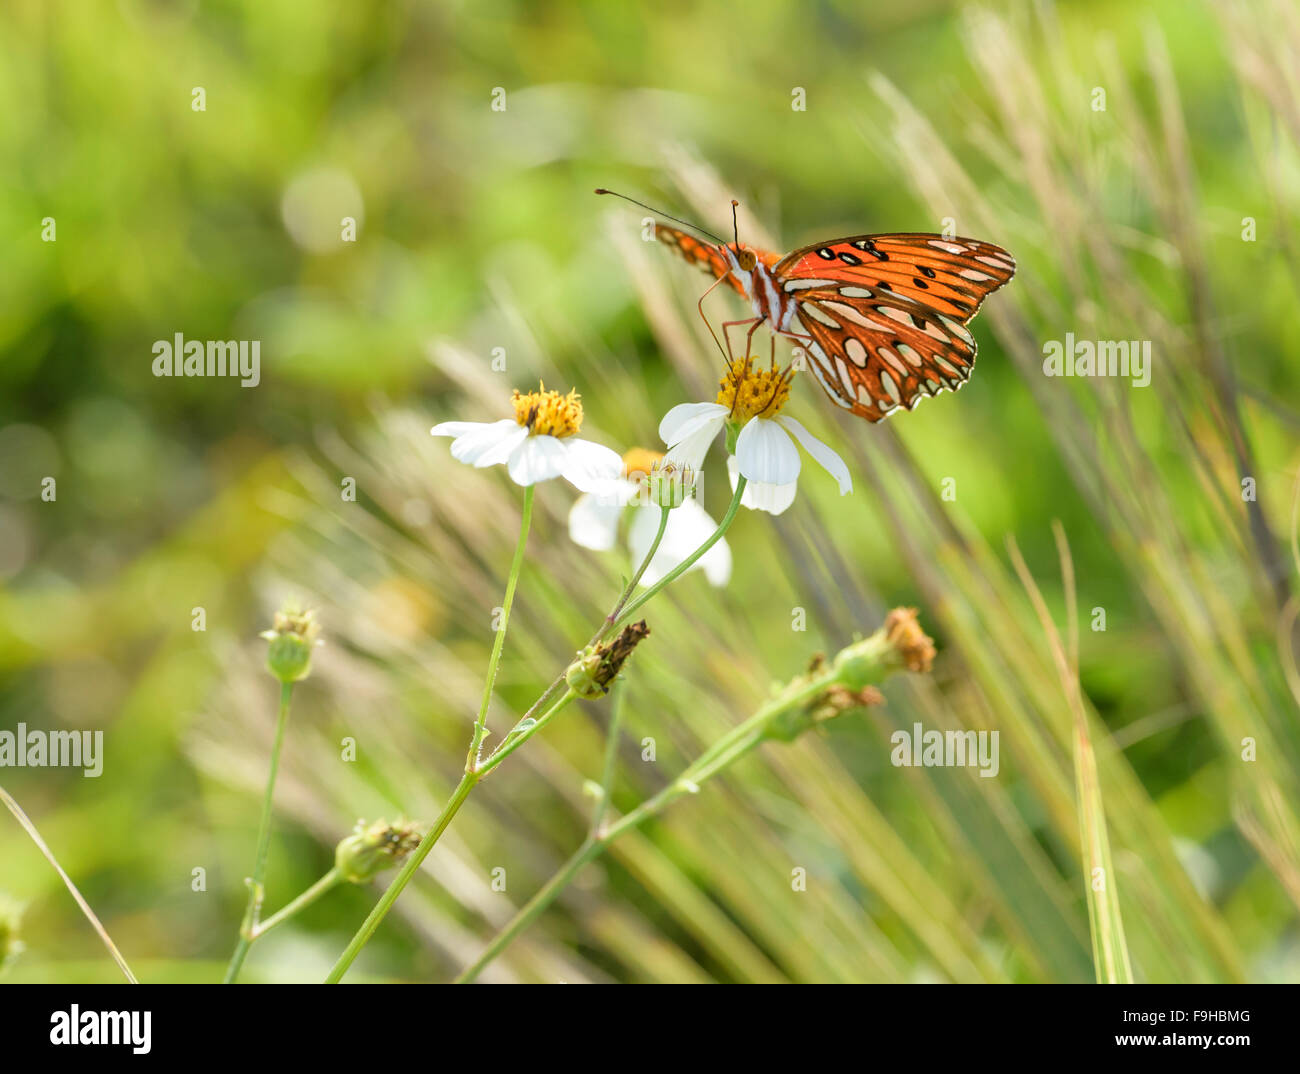 Fritillary butterfly on wildflowers - Stock Image